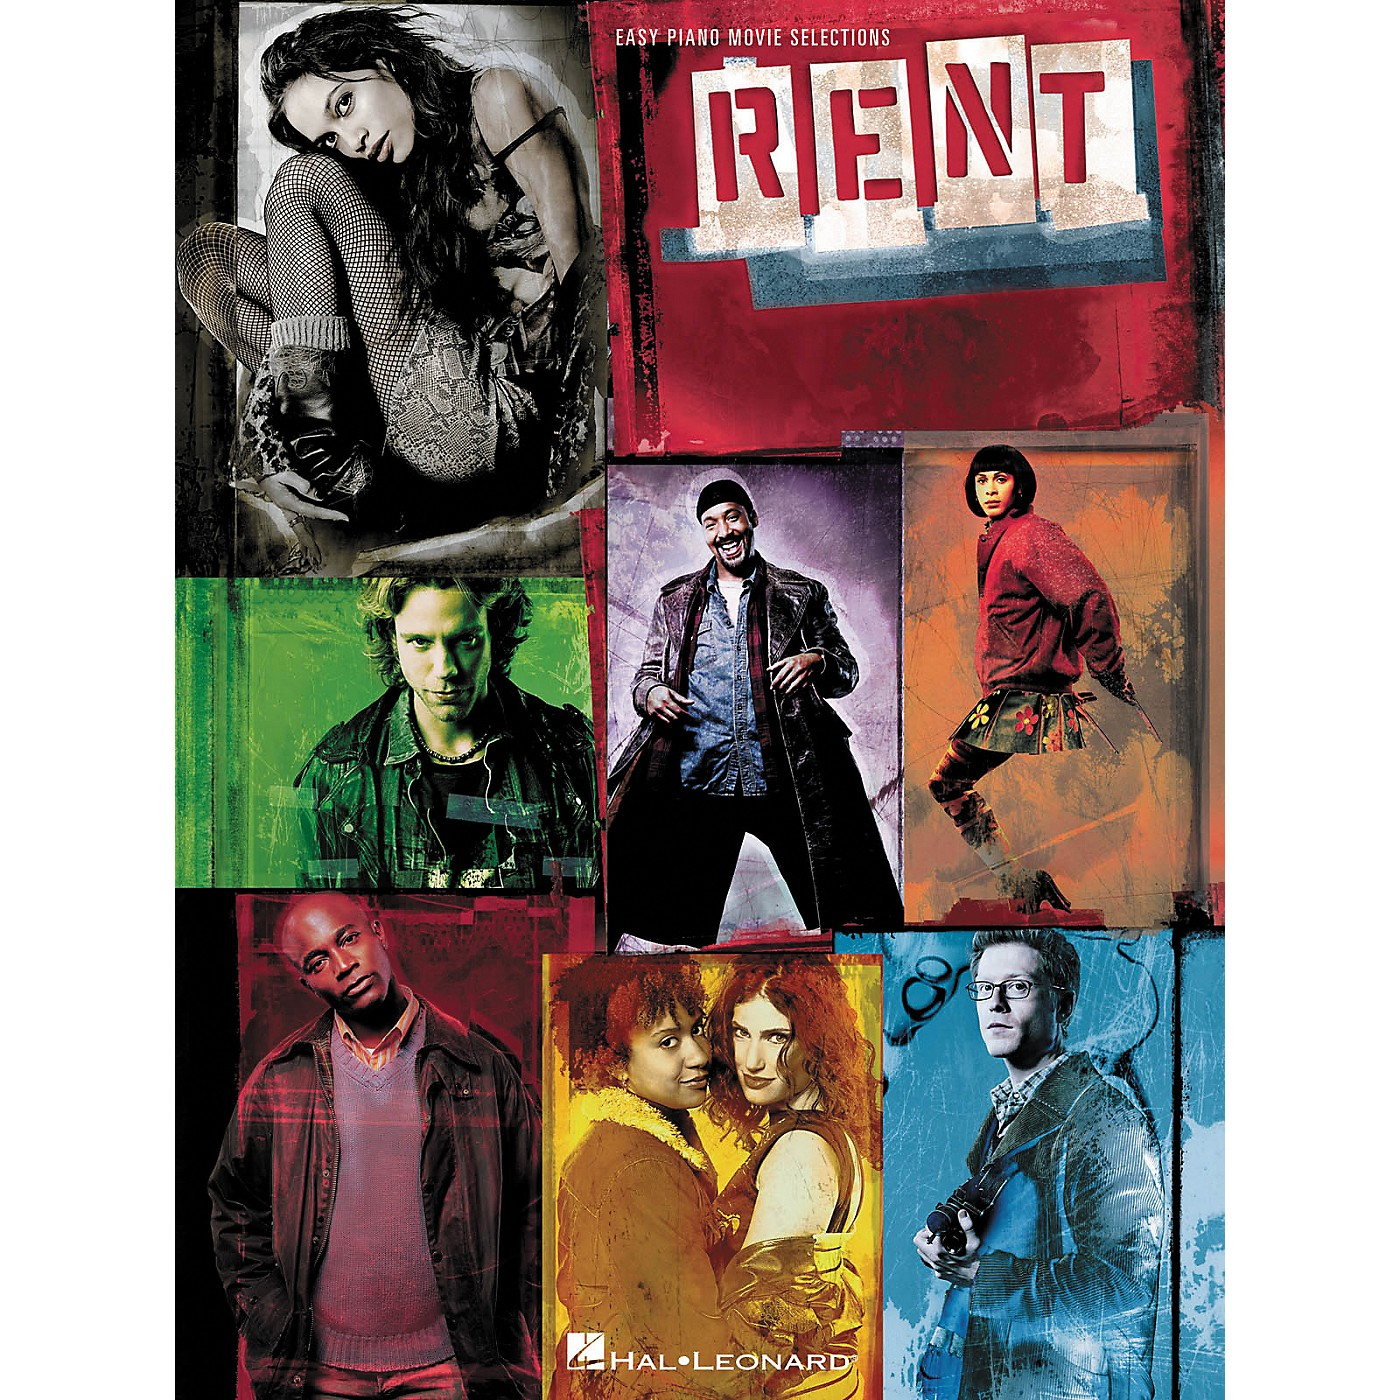 Hal Leonard Rent - Movie Selections For Easy Piano thumbnail